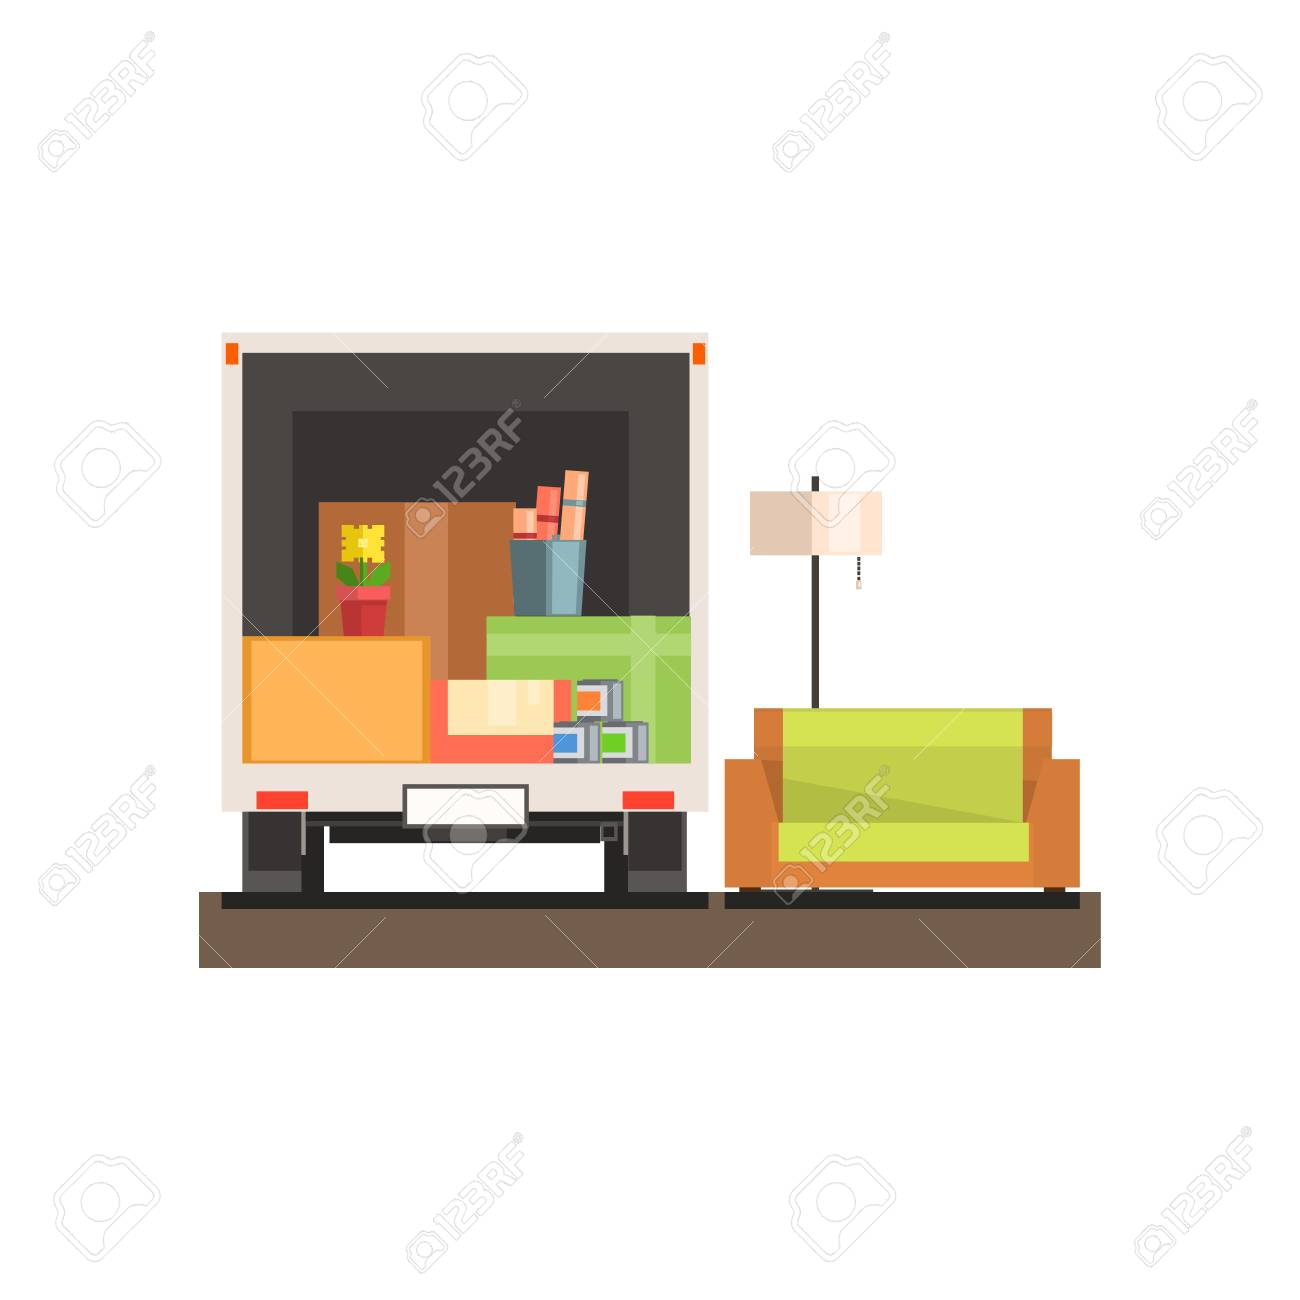 Room Interior With Sofa And Boxes 8-bit Abstract Primitive Flat ...